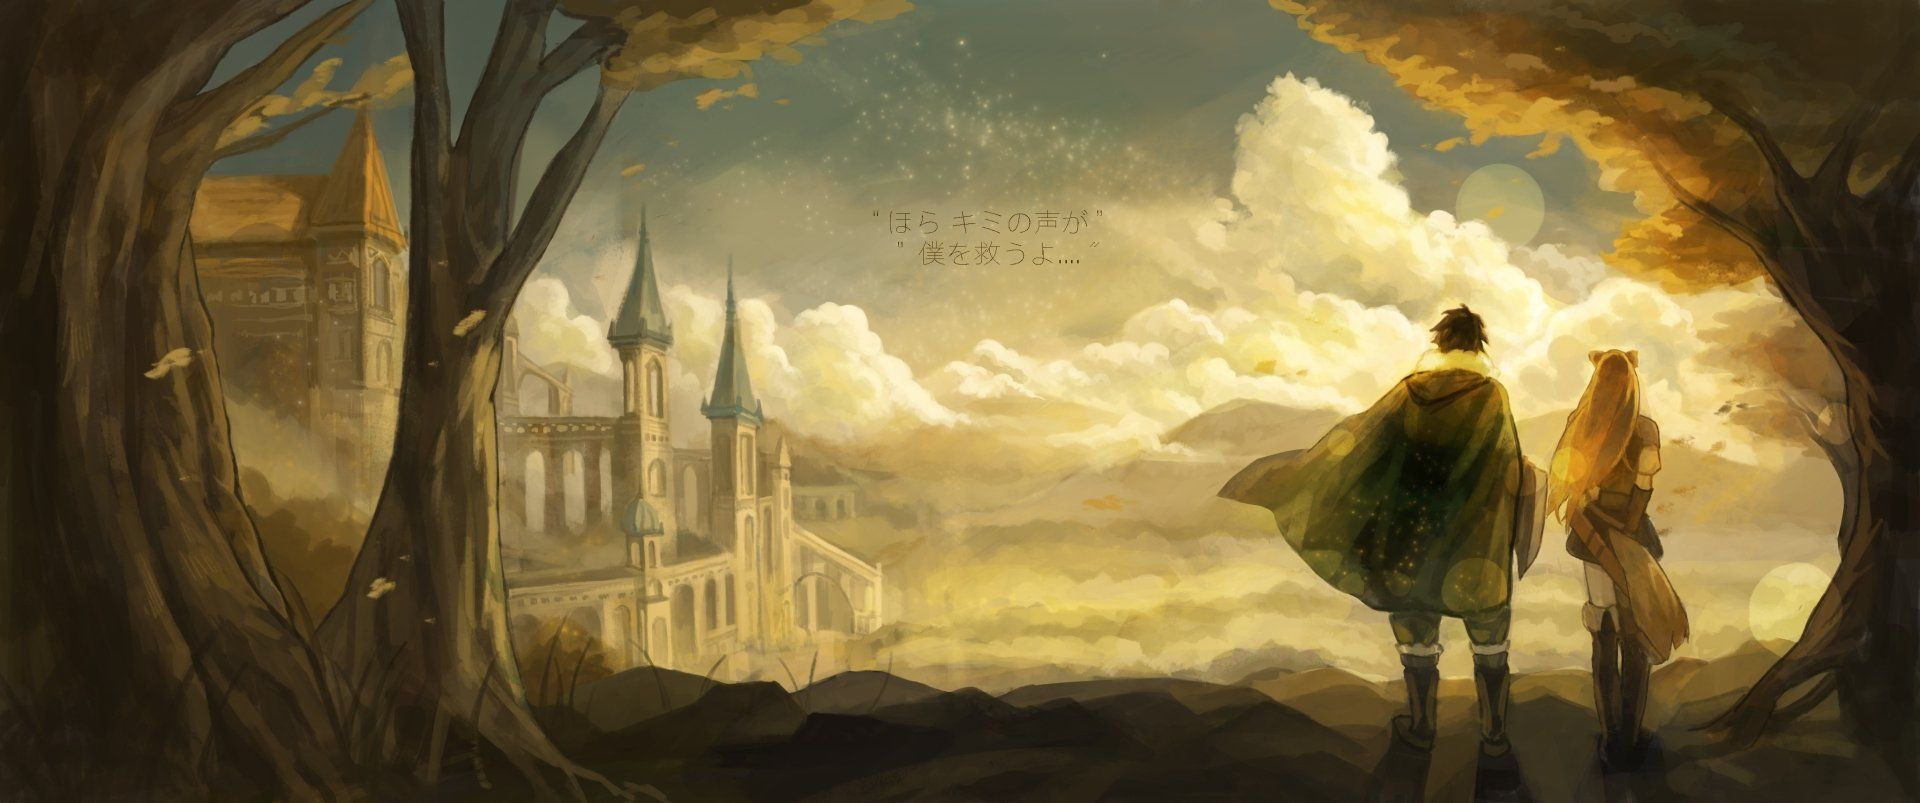 4096x1714 The Rising Of The Shield Hero Wallpaper Background Image View Download Comment And Rate Wallpaper Abyss Hero Wallpaper Anime Hero